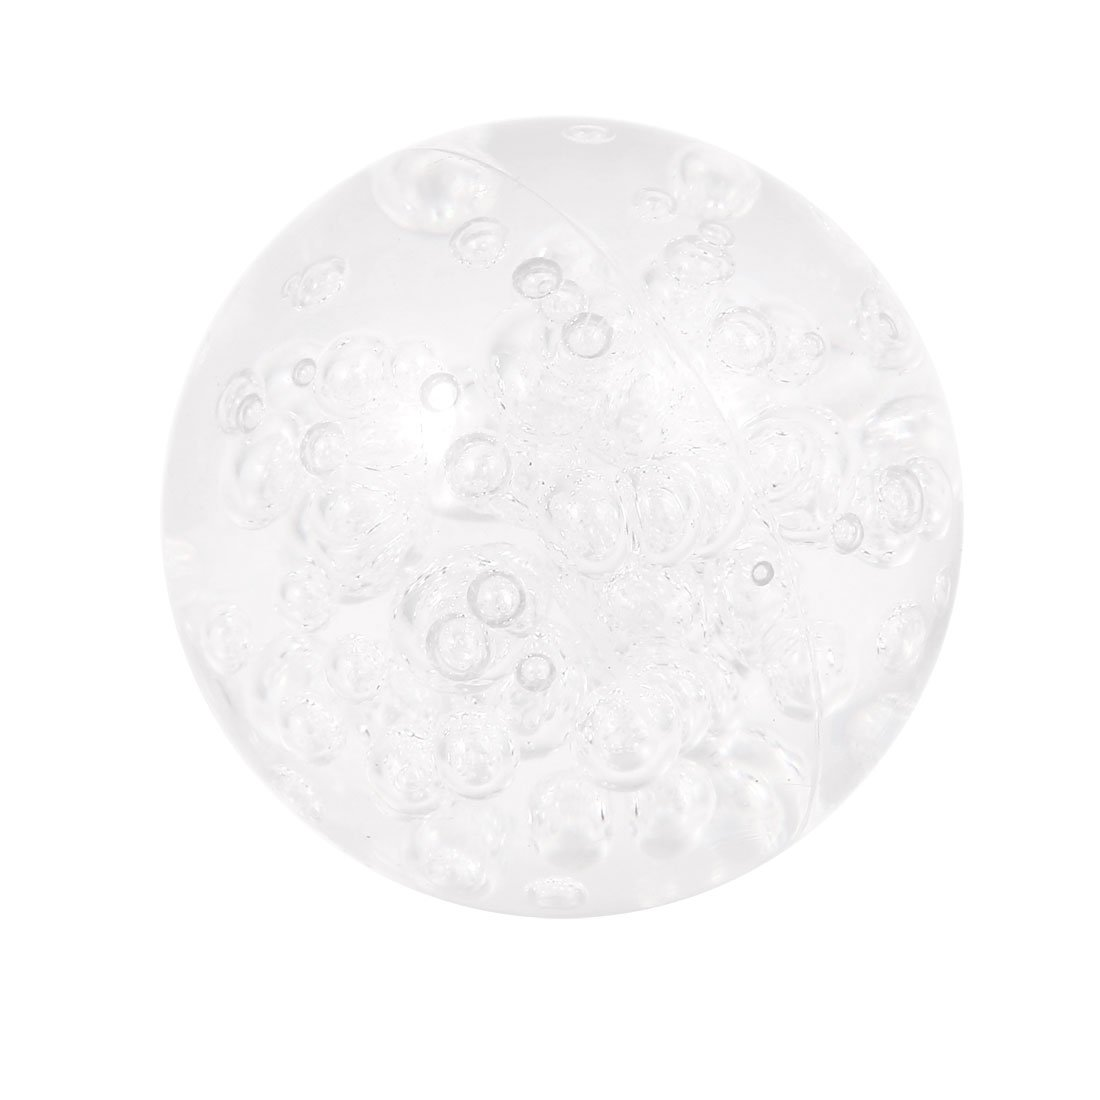 uxcell 58mm Diameter Acrylic Bubble Anti corrosion Contact Juggling Ball Clear